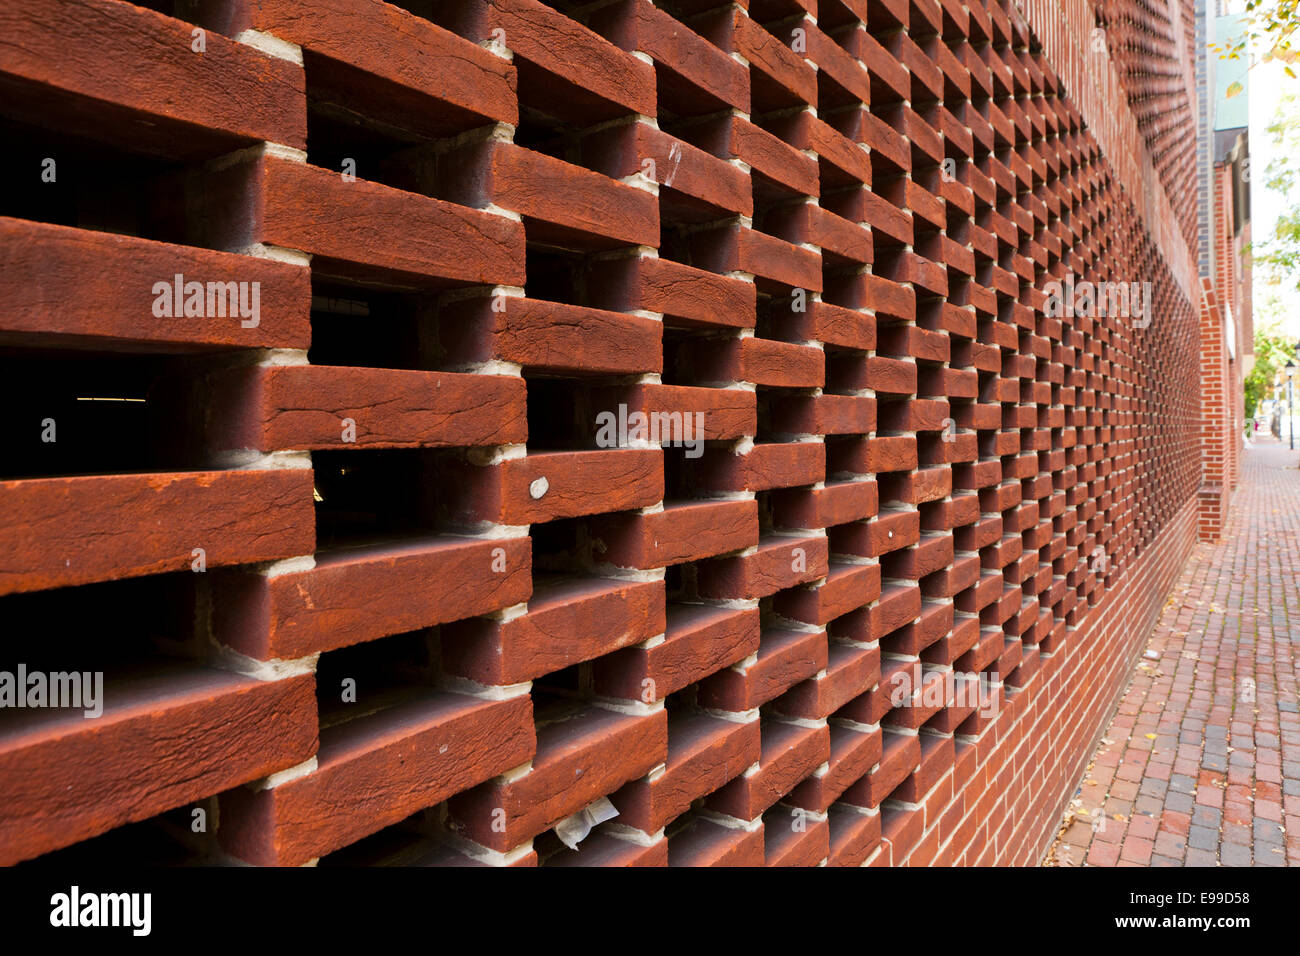 Perforated brickwork design (hit-and-miss) used on wall of building - Alexandria, Virginia USA - Stock Image